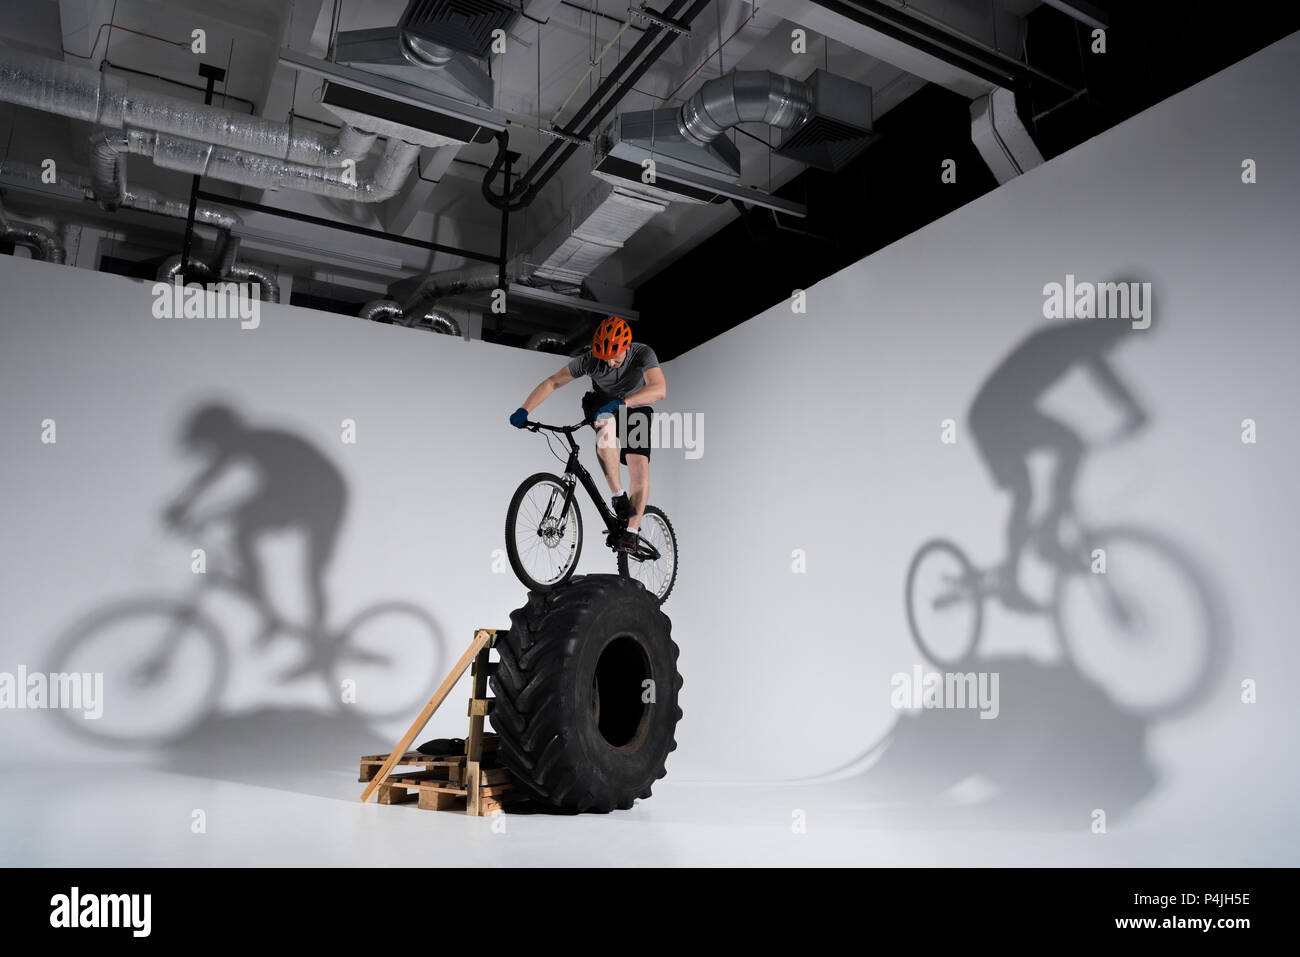 young athletic trial biker balancing on tractor wheel - Stock Image